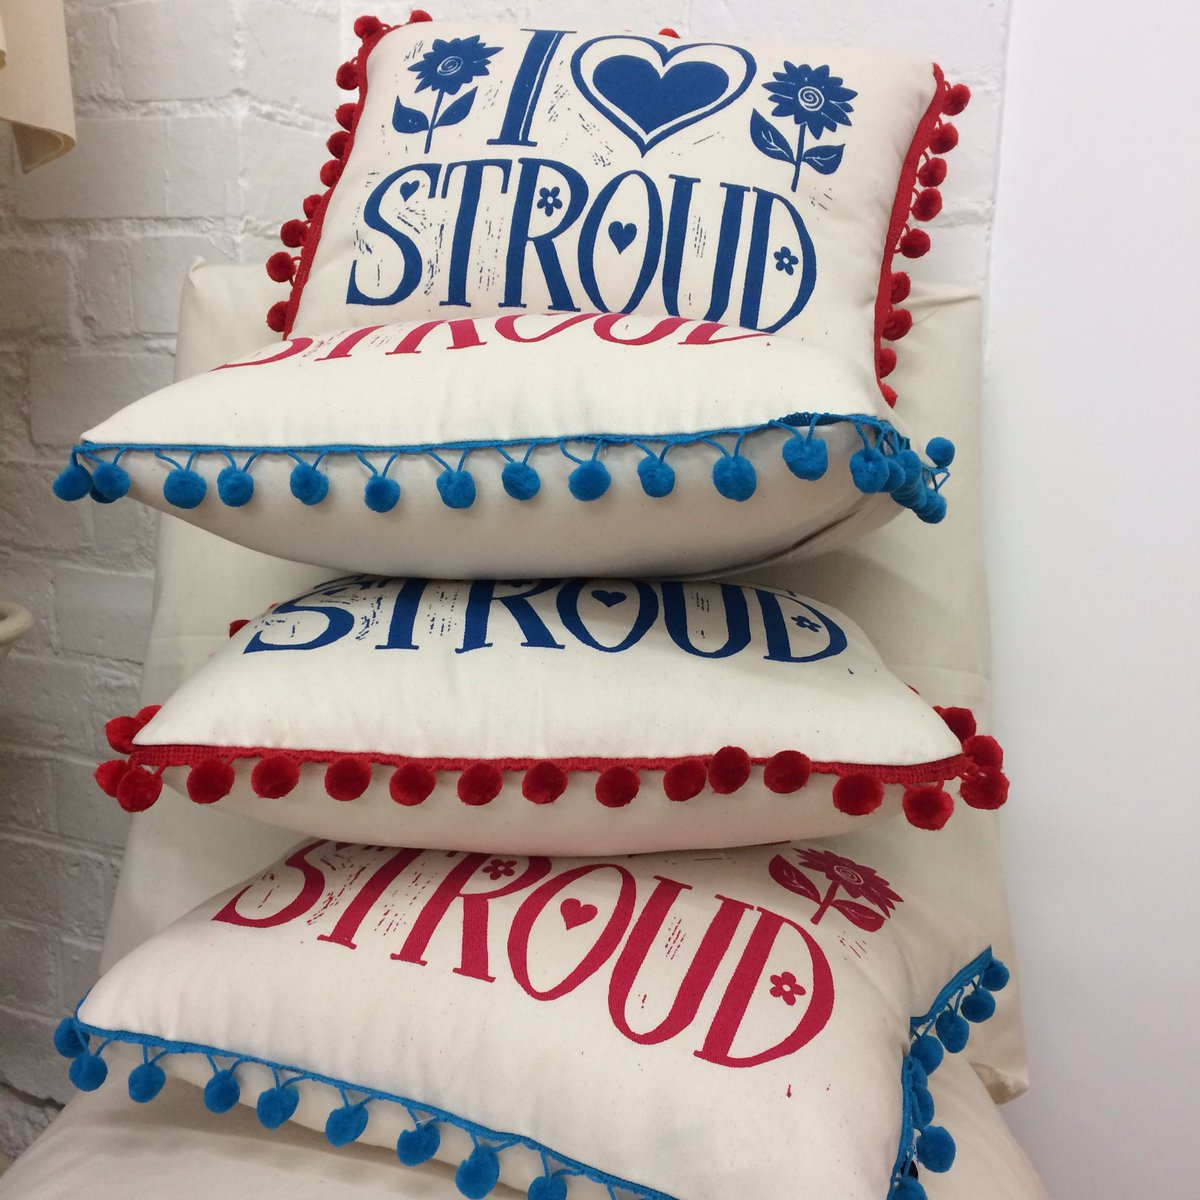 #Stroud cushions on their way to @madeinstroud this week just in time for @Stroudfringe  #stroudfringe #shoplocal <br>http://pic.twitter.com/F6jxz25QBJ